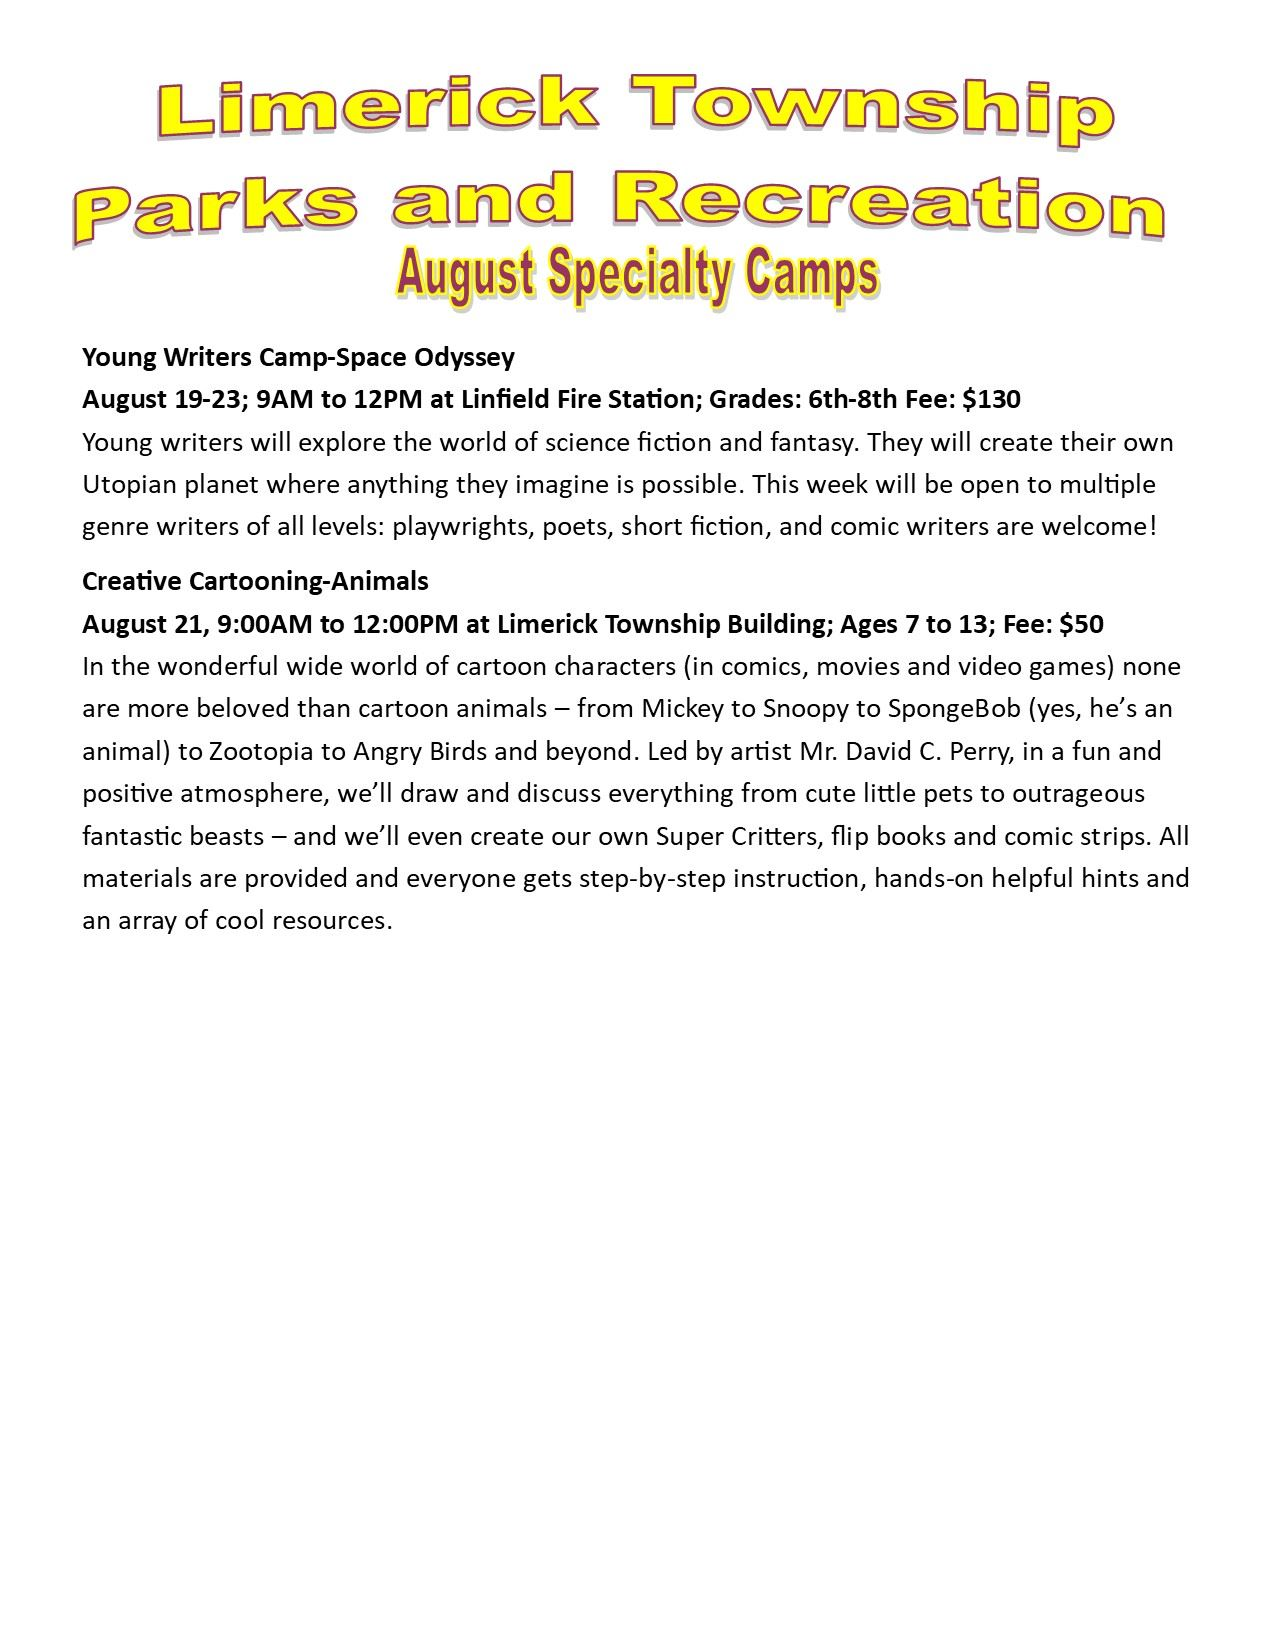 2019 August Specialty Camps 2